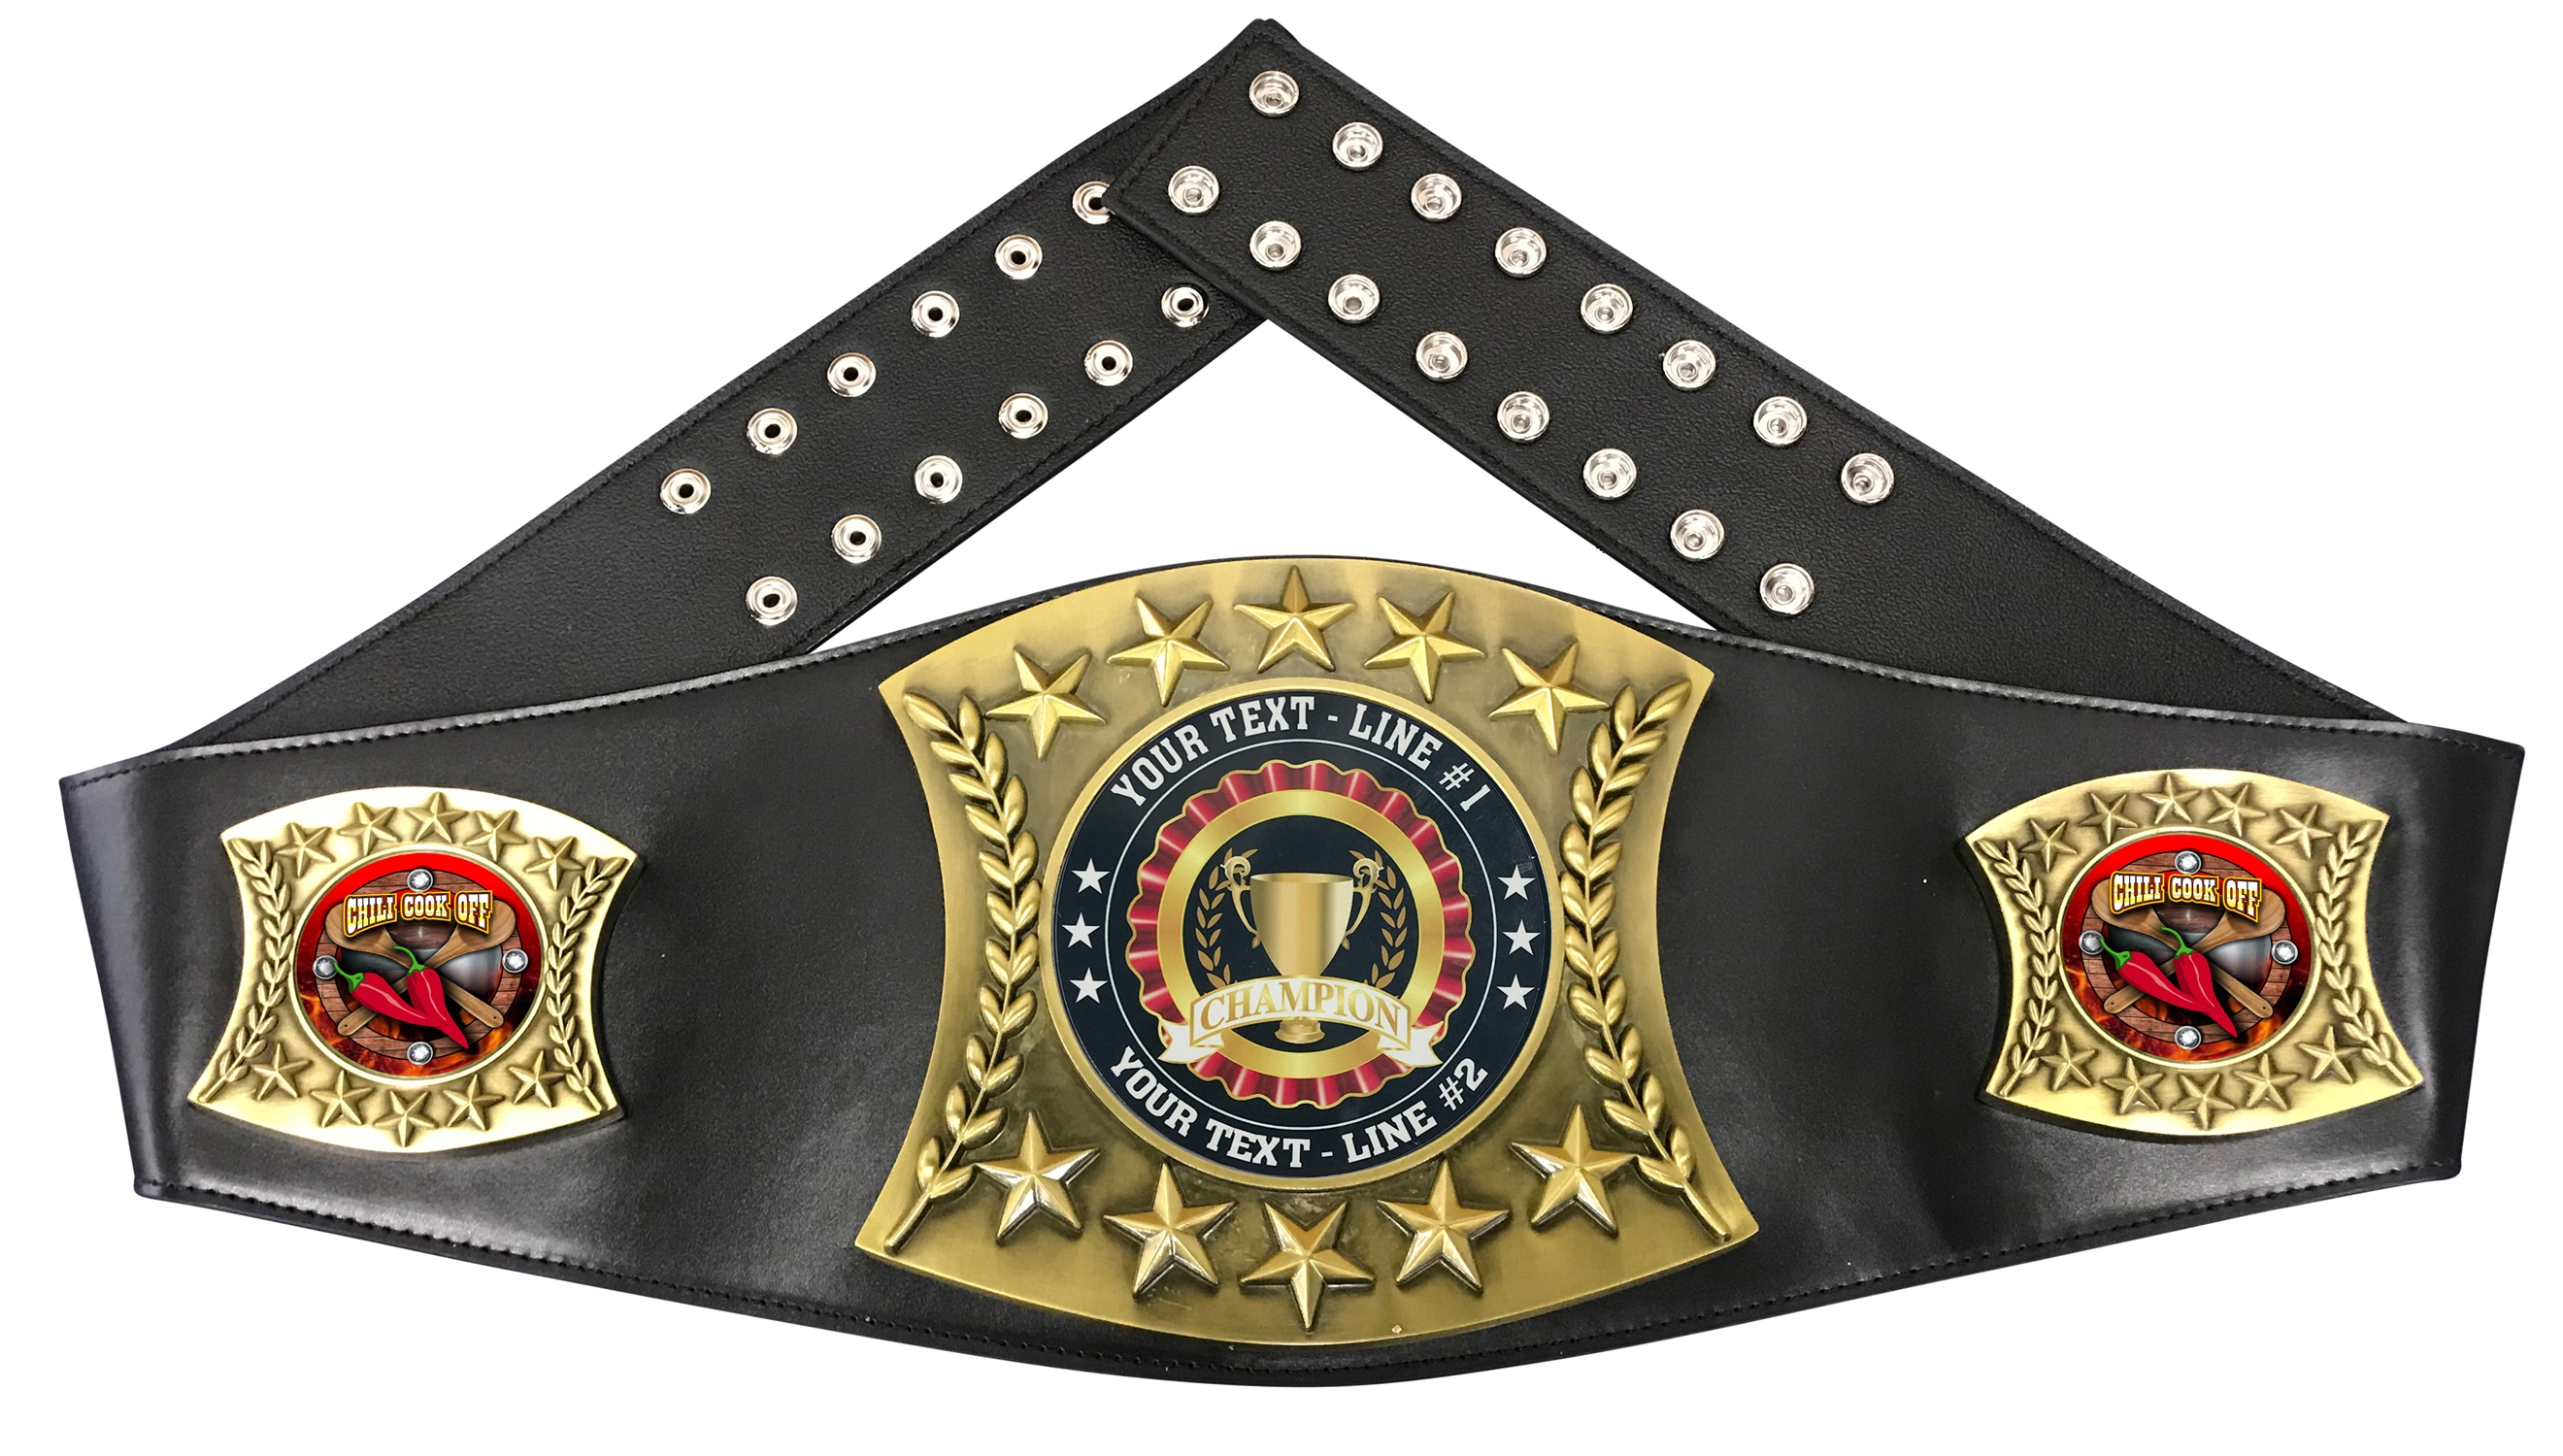 Chili Cook Off Personalized Championship Belt